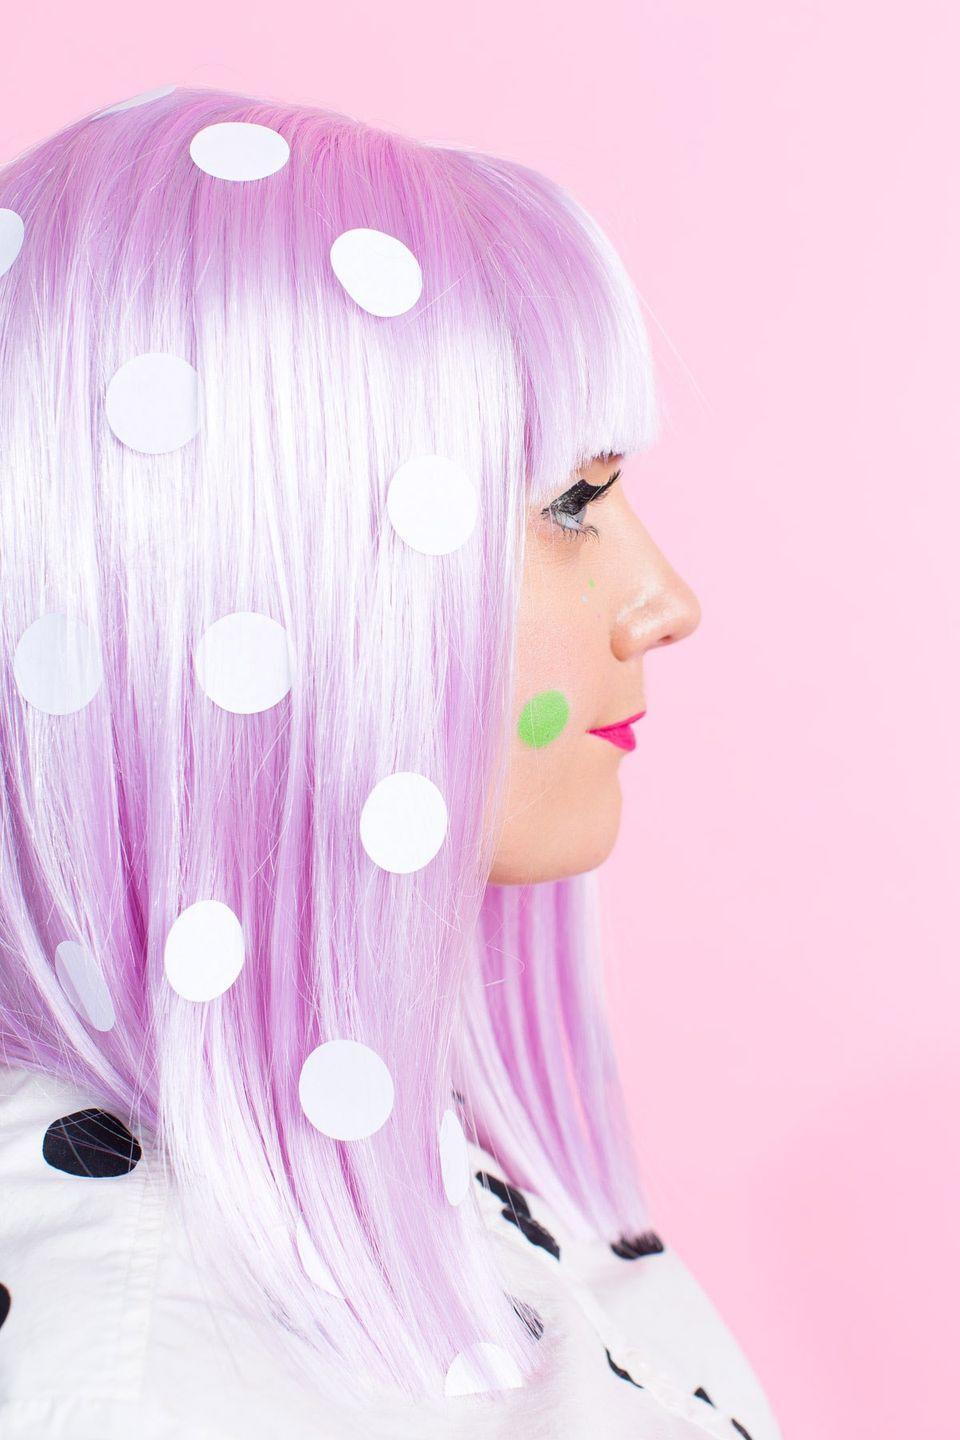 """<p>Fun wig? Check. Dots? Check. Sugar & Cloth has the perfect recipe for a truly dotty getup that takes very little time to put together (and won't leave you running around in circles at the last minute). </p><p><em><a href=""""https://sugarandcloth.com/winks-wigs-diy-wig-and-lash-combinations-for-halloween/"""" rel=""""nofollow noopener"""" target=""""_blank"""" data-ylk=""""slk:Get the tutorial from Sugar & Cloth »"""" class=""""link rapid-noclick-resp"""">Get the tutorial from Sugar & Cloth »</a> </em></p>"""